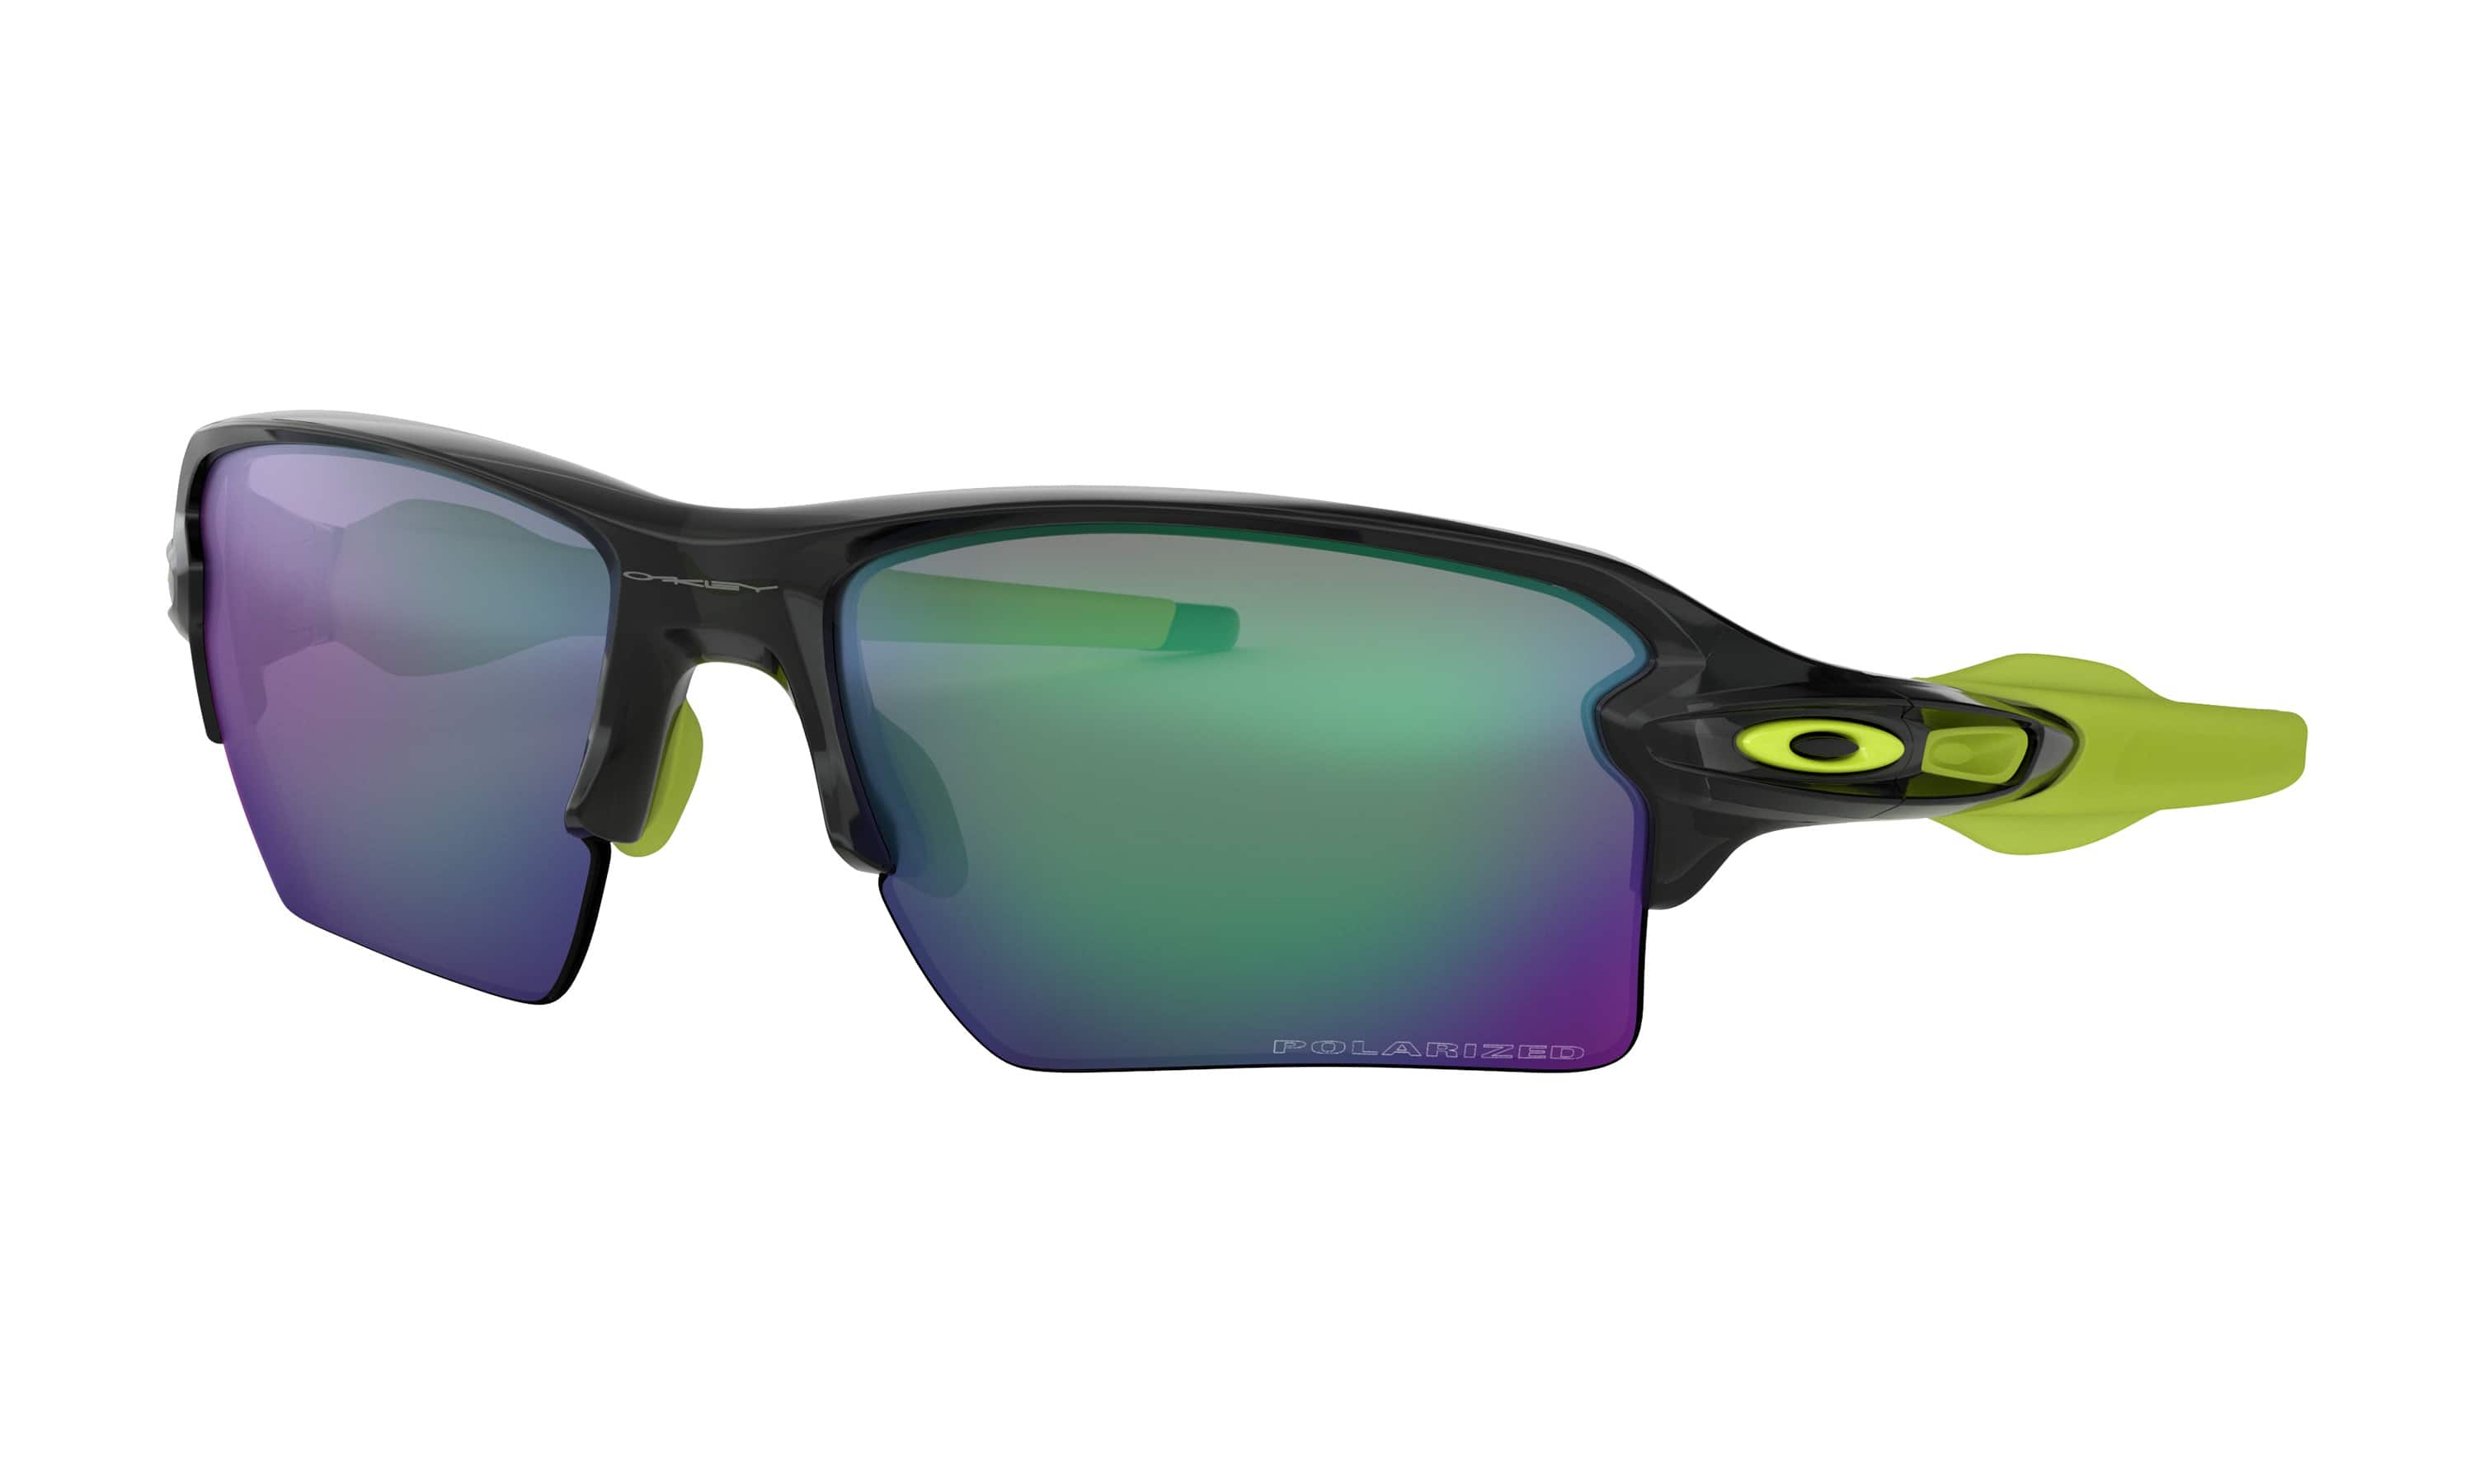 Massdrop Oakley Flak 2.0 XL Jade Iridium Polarized Sunglasses $84.99 + $3.50 Shipping $88.49